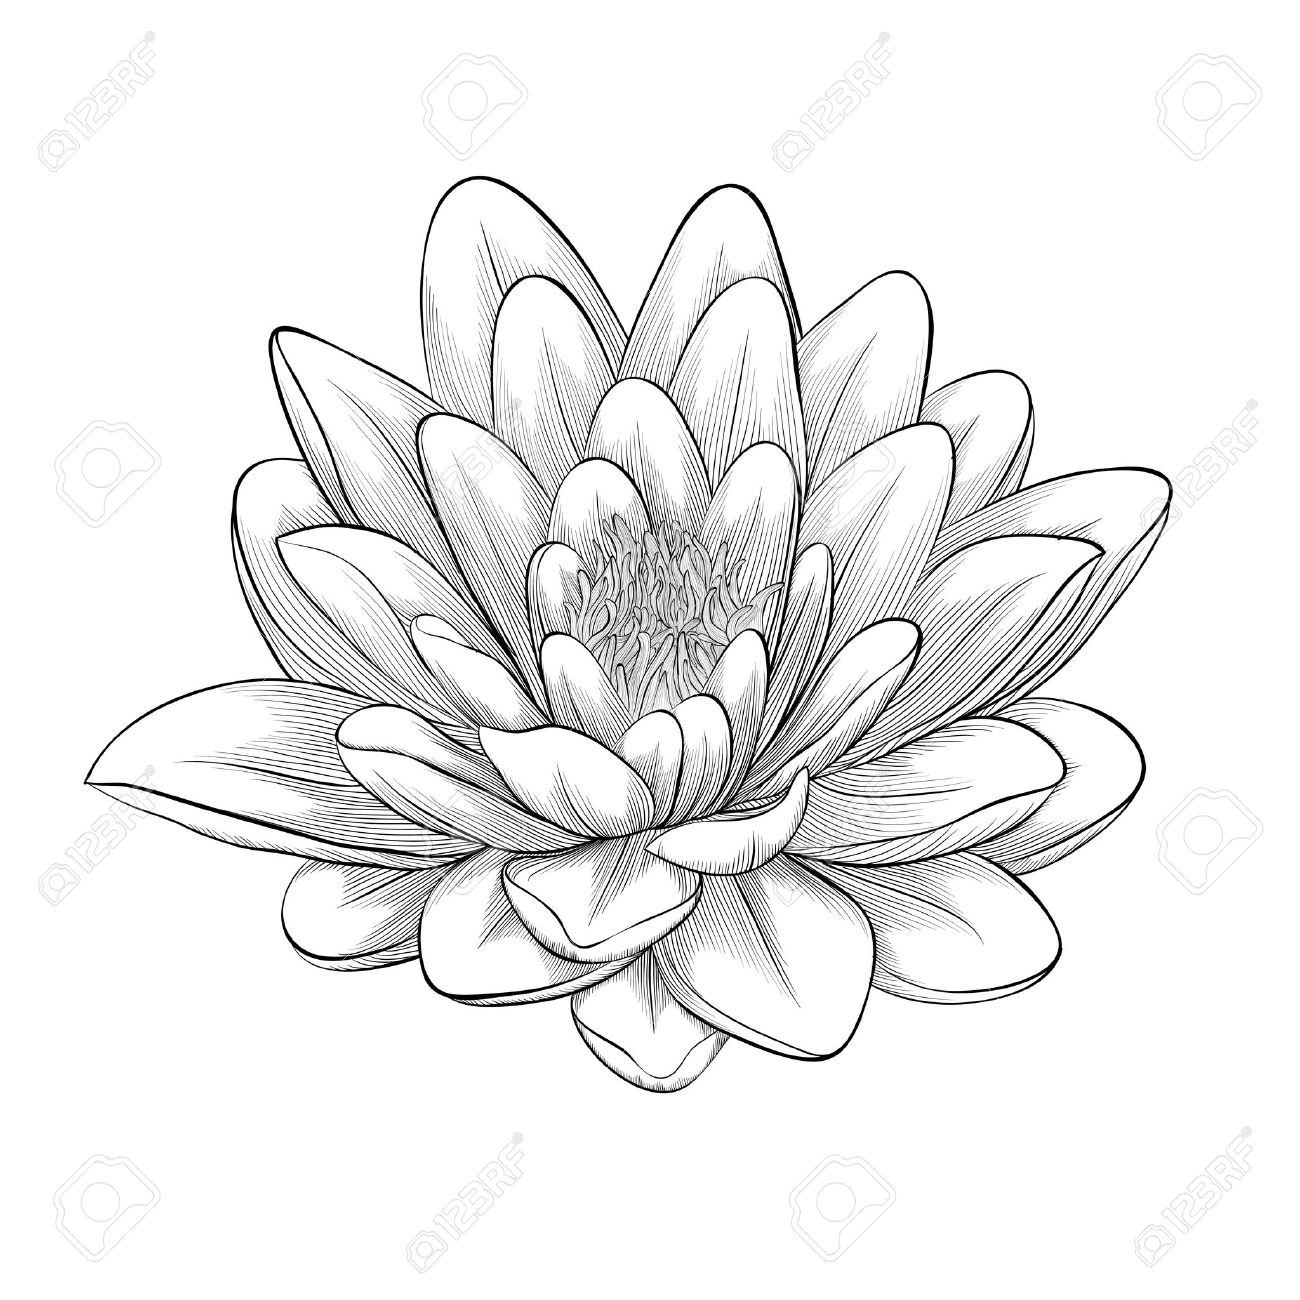 1300x1300 Lotus Flower Drawing Black And White Vector Black And White Lotus